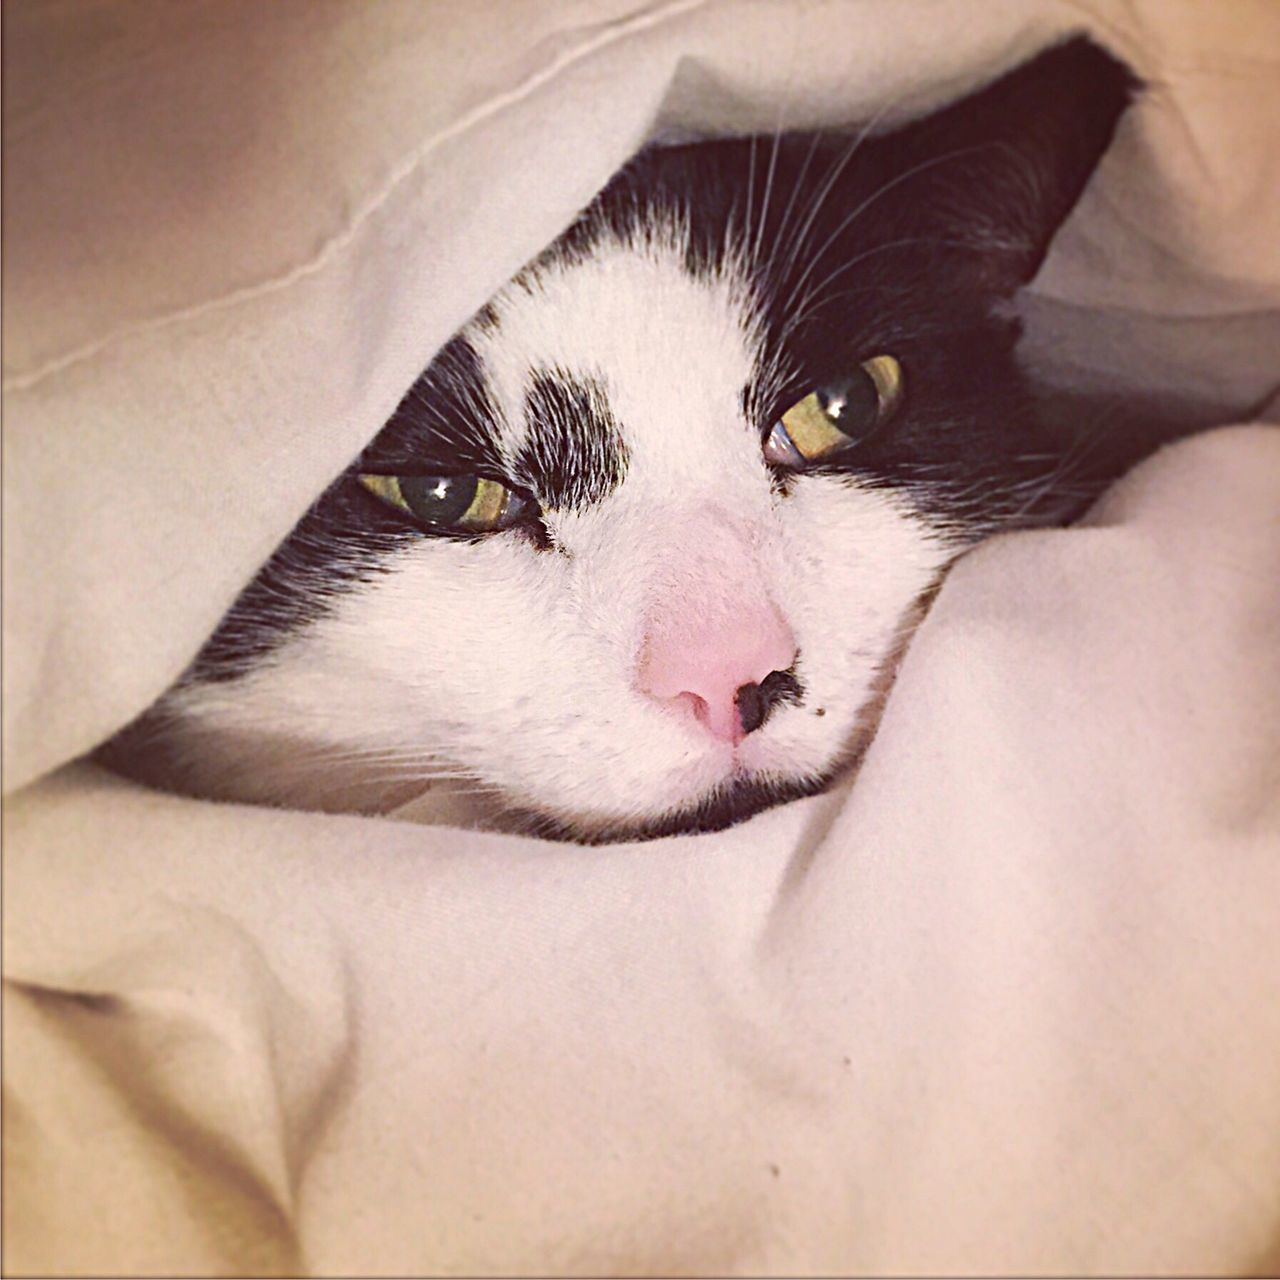 Domestic Animals Domestic Cat Pets Mammal Close-up Indoors  Lying Down Real People Animal Themes Feline Cat Nose Eye Pink Nose Cat Eyes Face Cat Face Buried Hiding Cats Of EyeEm Cateyes Feline Eyes Hide And Seek Hide Day